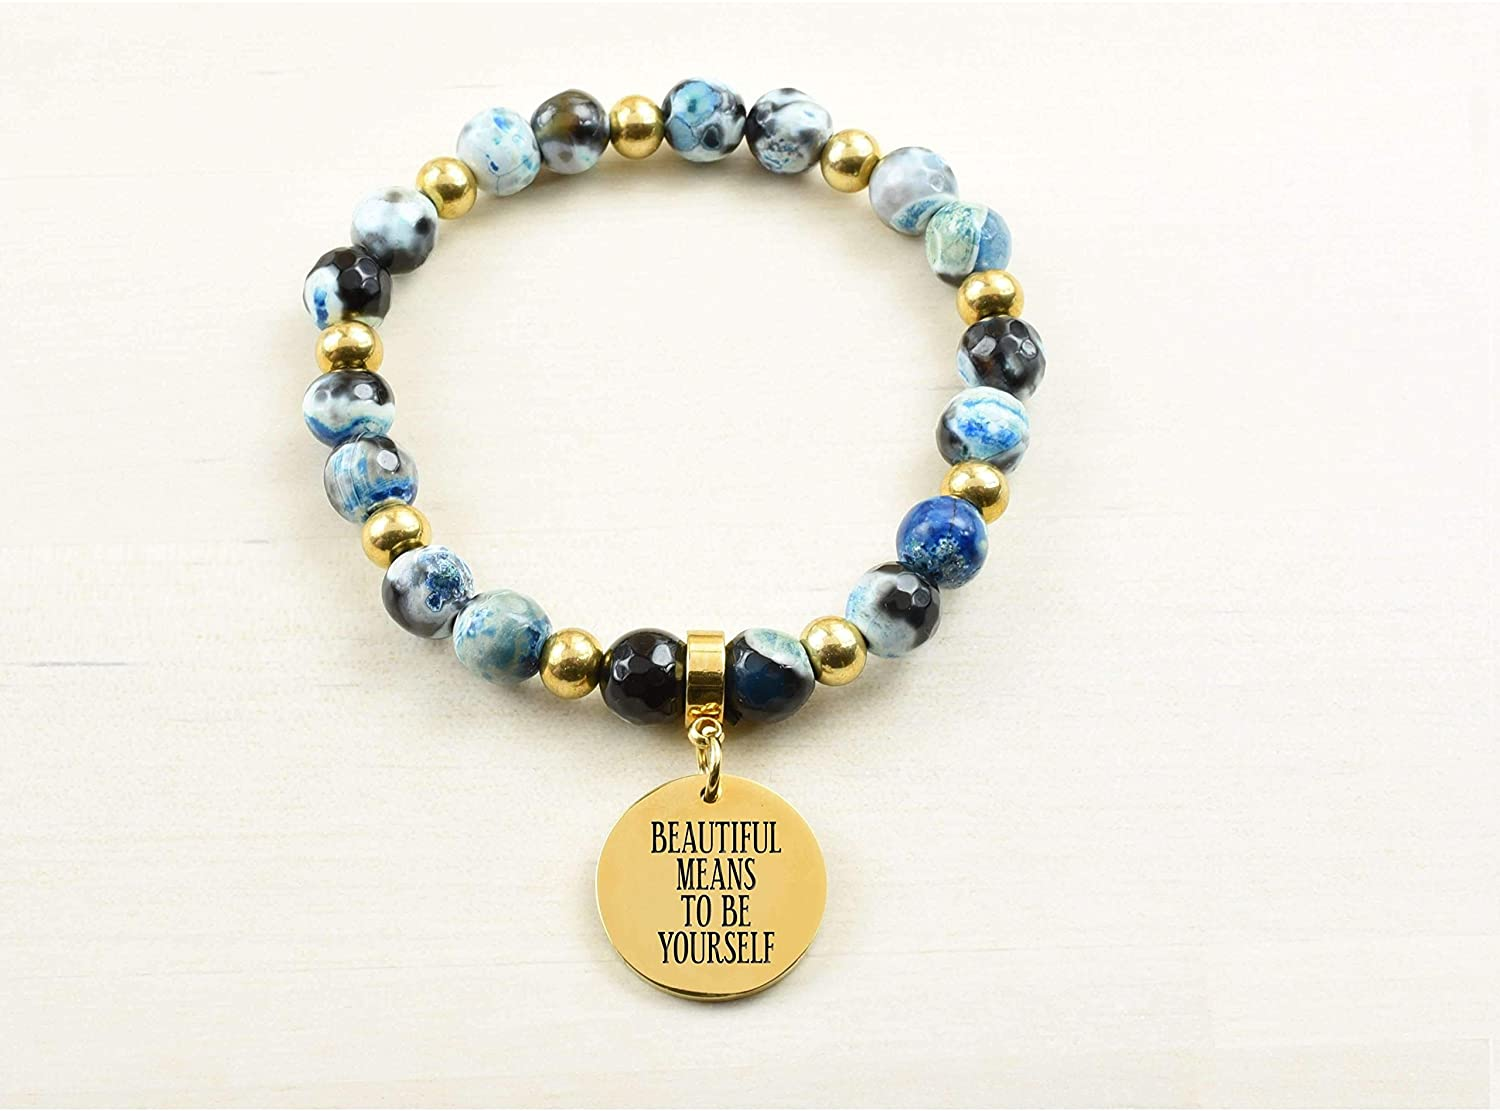 Pink Box Genuine Agate Inspirational Bracelet - Blue - Beautiful Means - Silver -